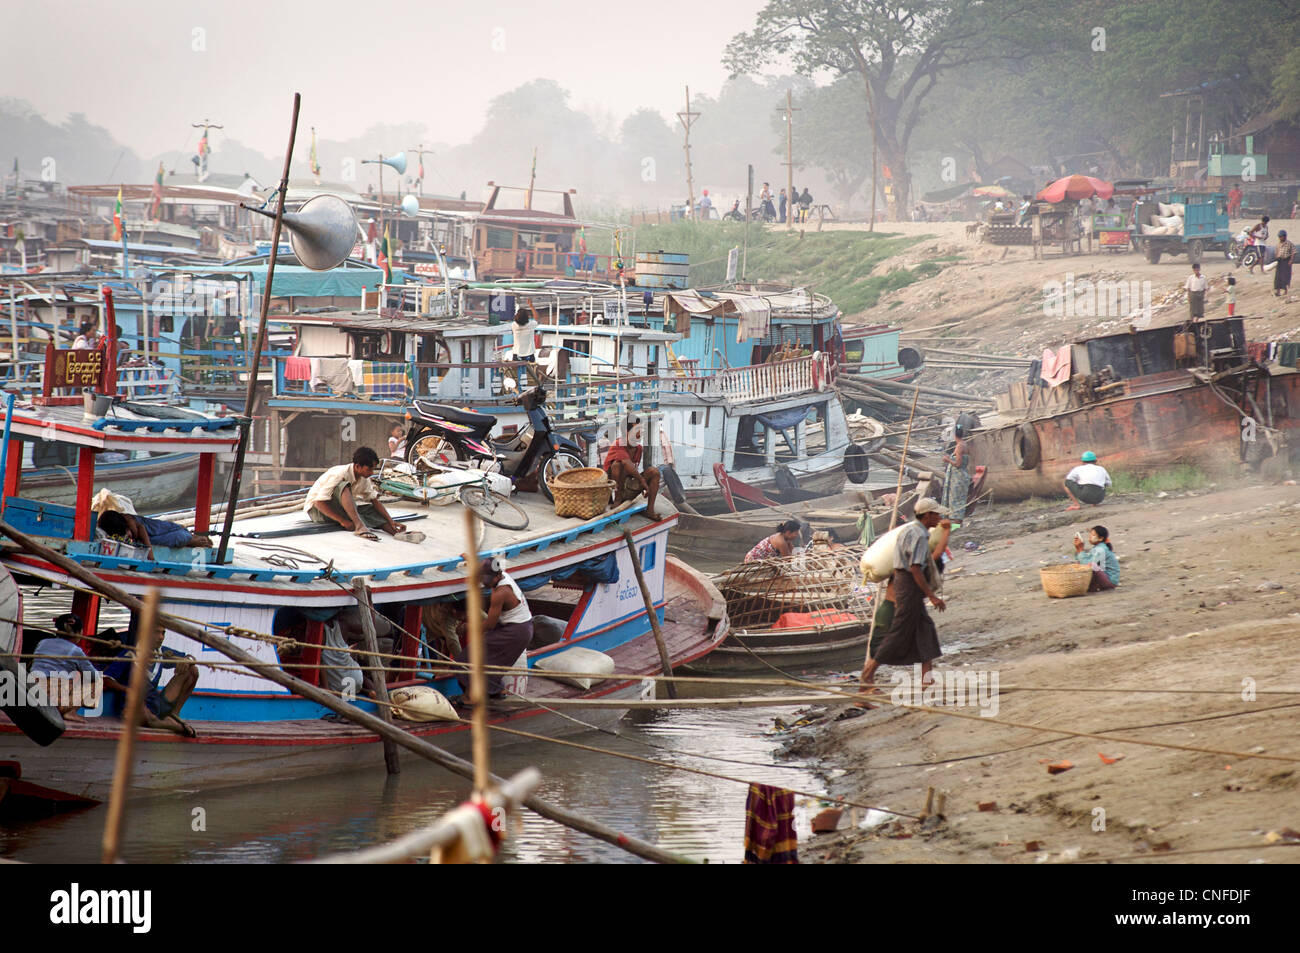 Riverside scene - boats on the waterfront, Mandalay, Burma. Irrawaddy  River, Myanmar - Stock Image